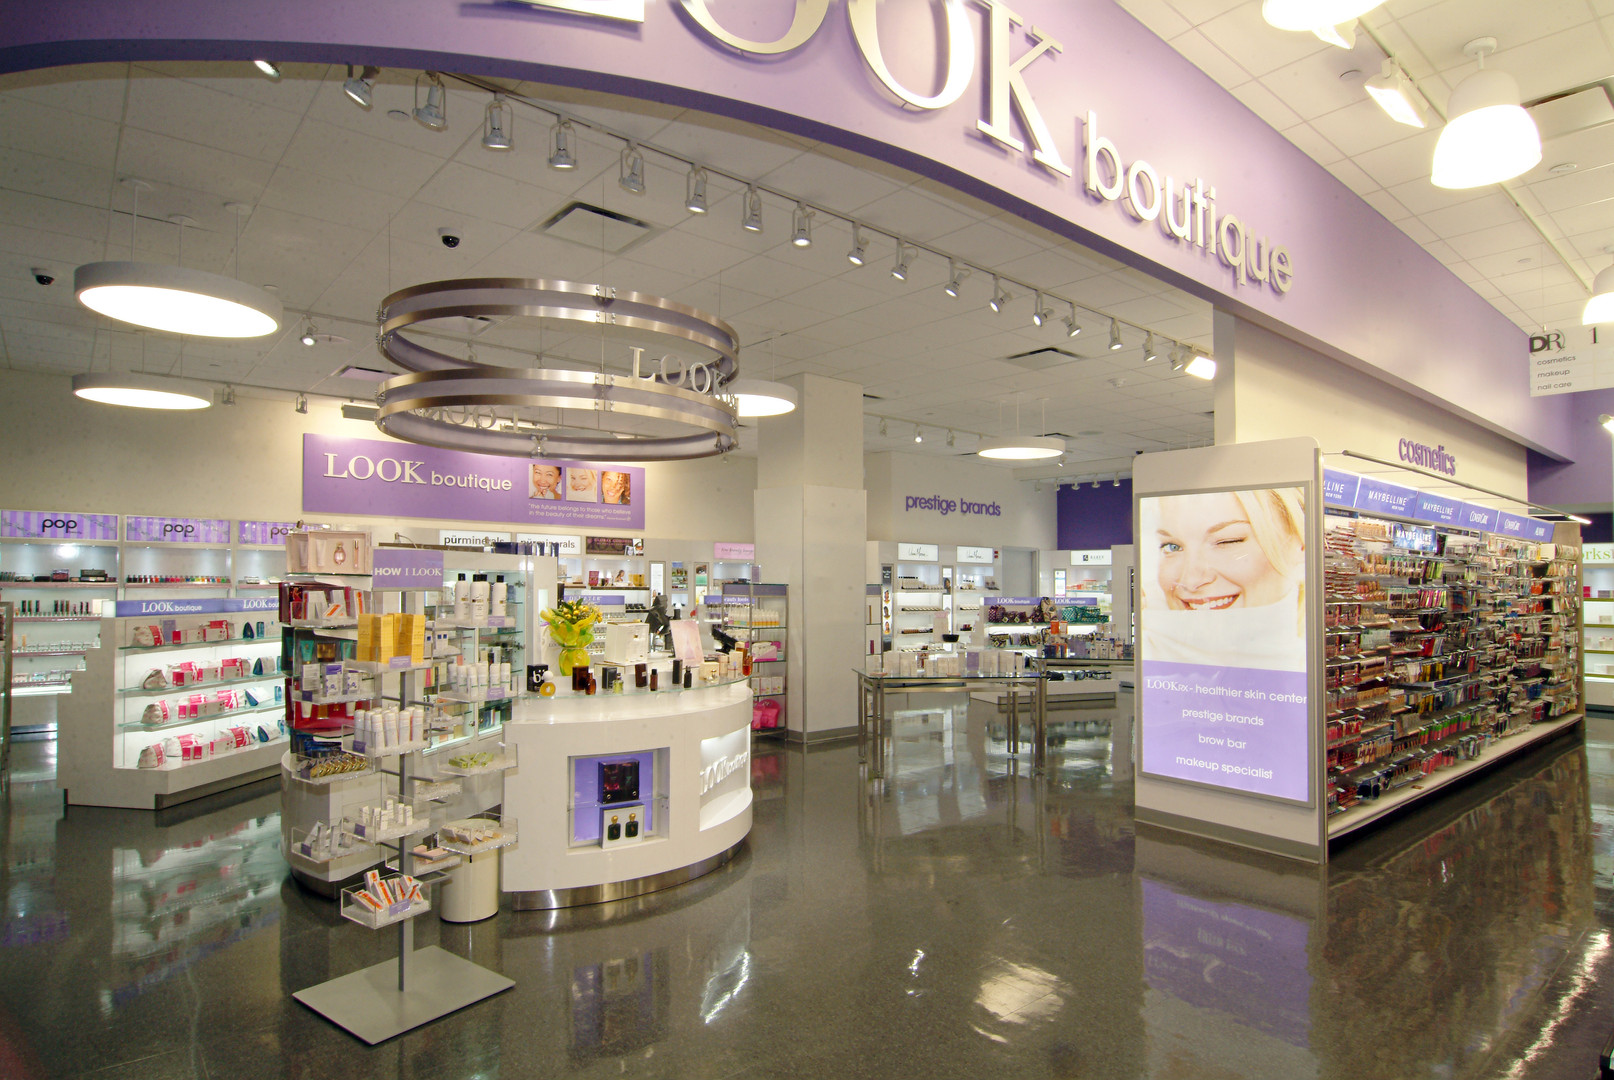 DuaneReade-Interior-3.jpg